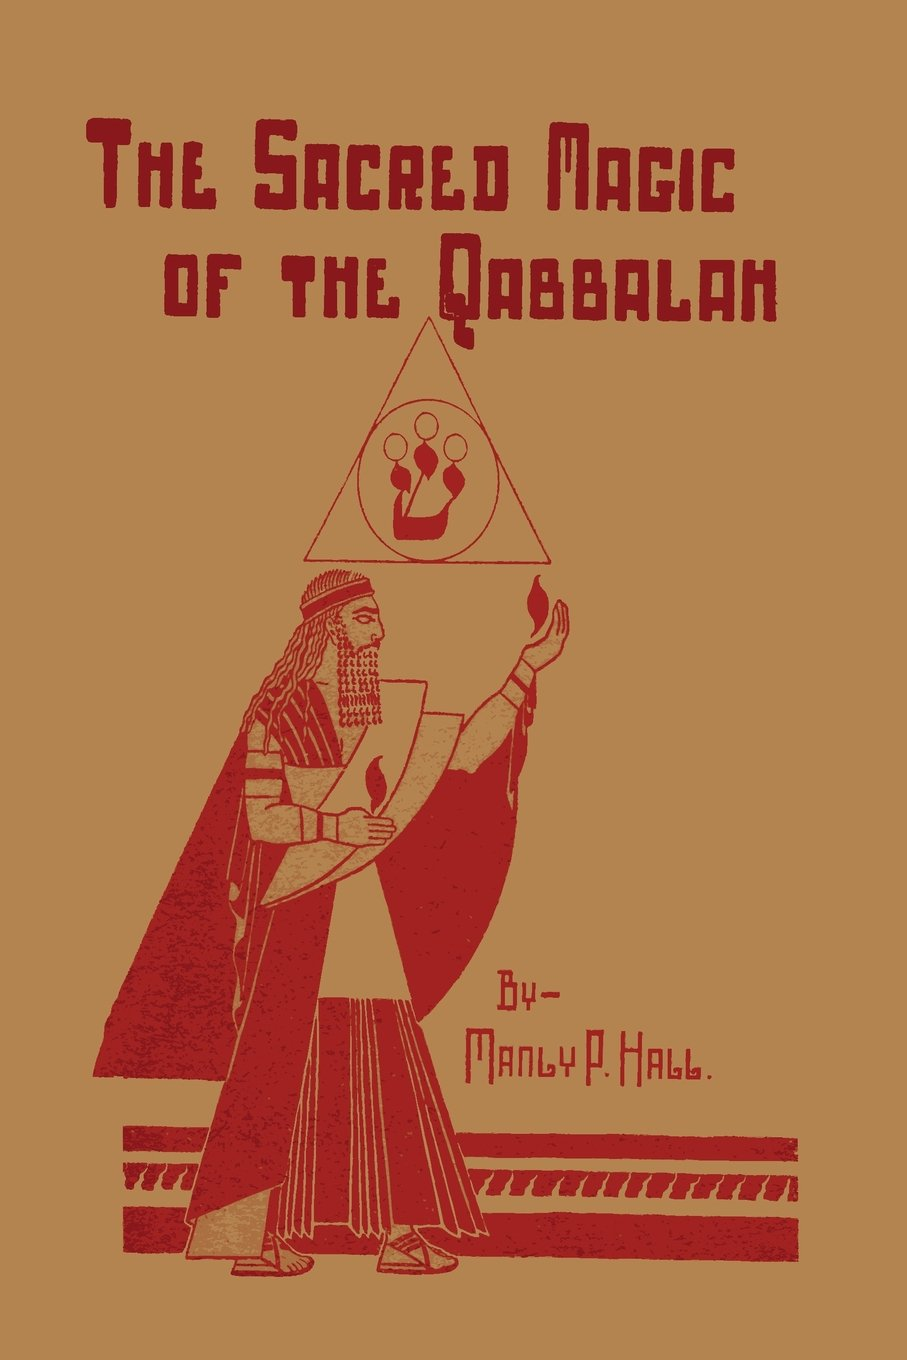 The Sacred Magic of the Qabbalah: Manly P. Hall: 9781614274421 ...